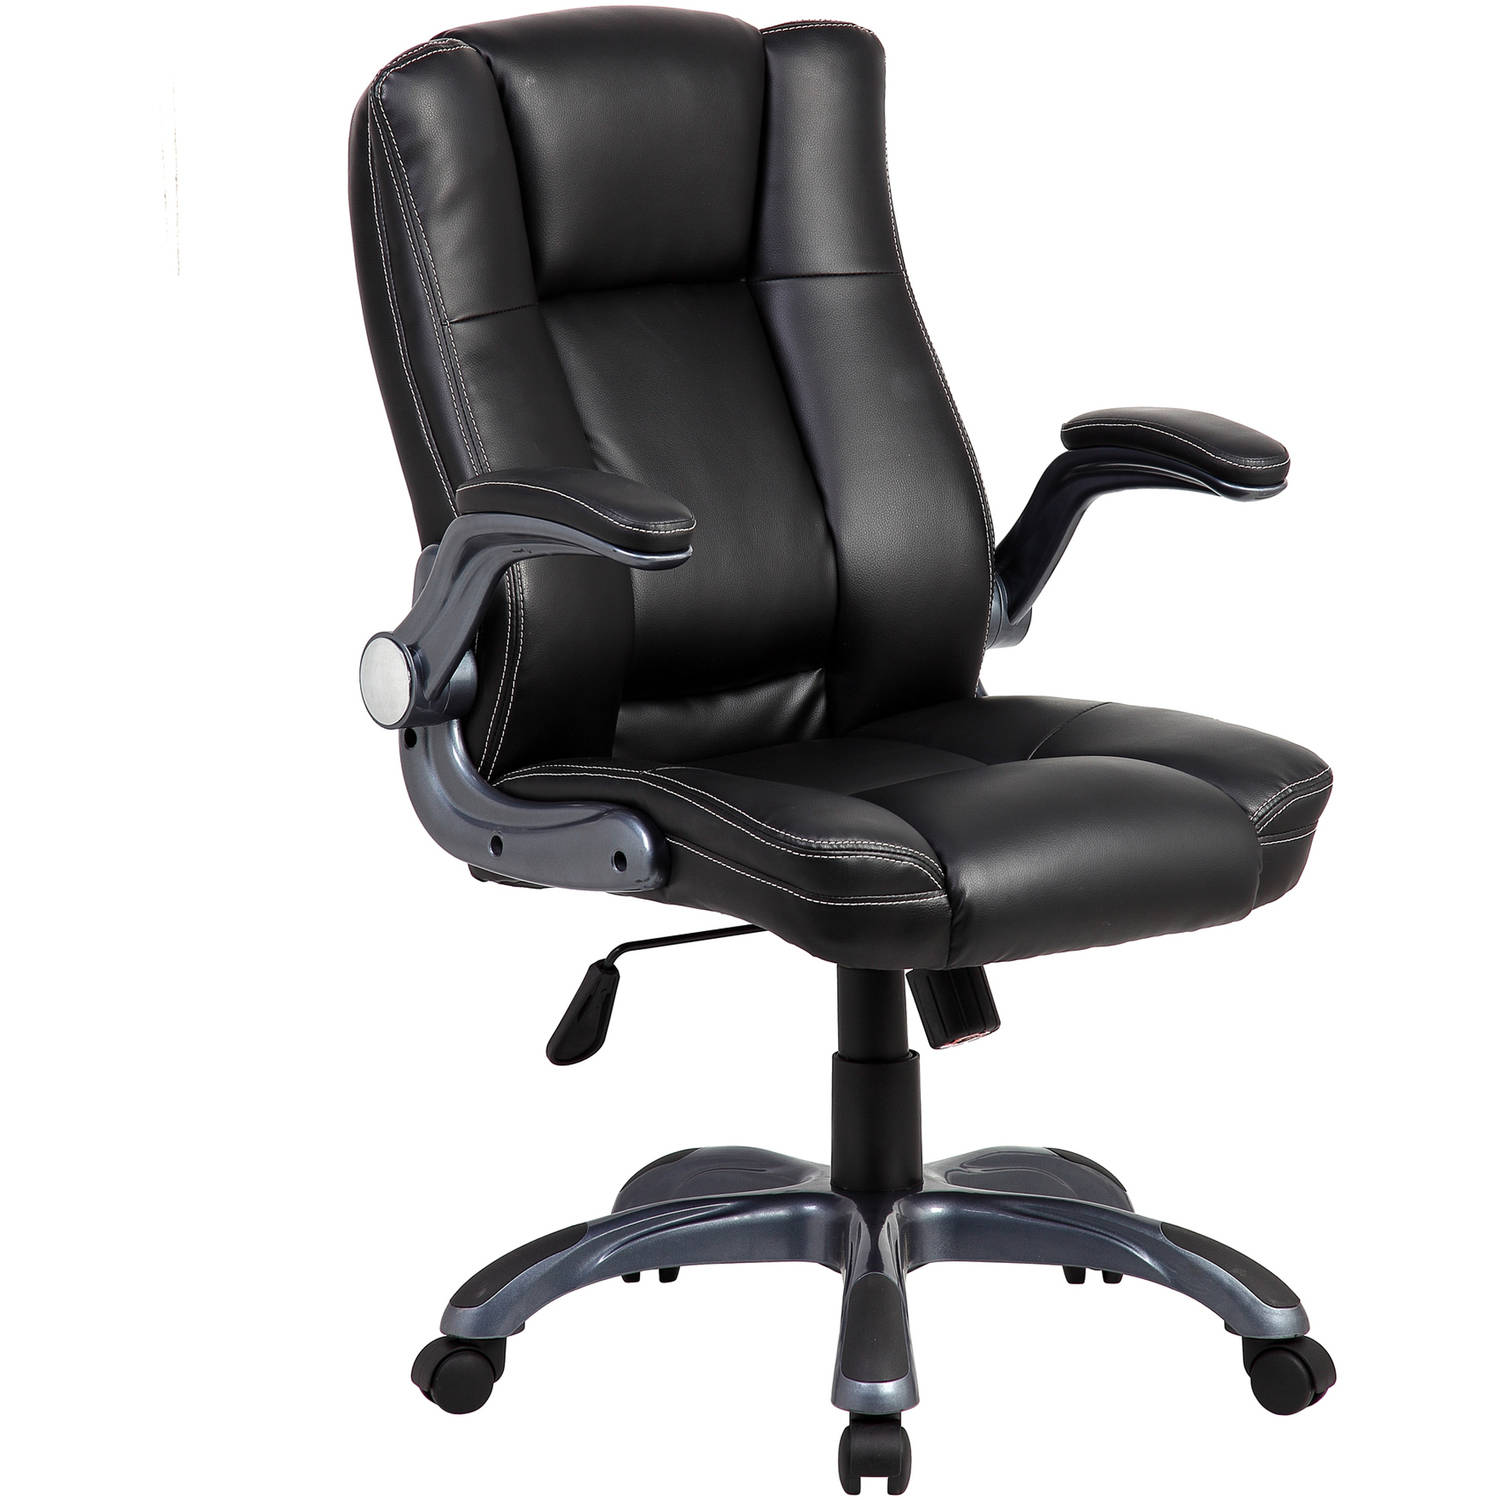 Modern Furniture Mid-Back Modern Computer PU Leather Office Executive Chair with Thick-Padded Back and Seat, Adjustable Armrests